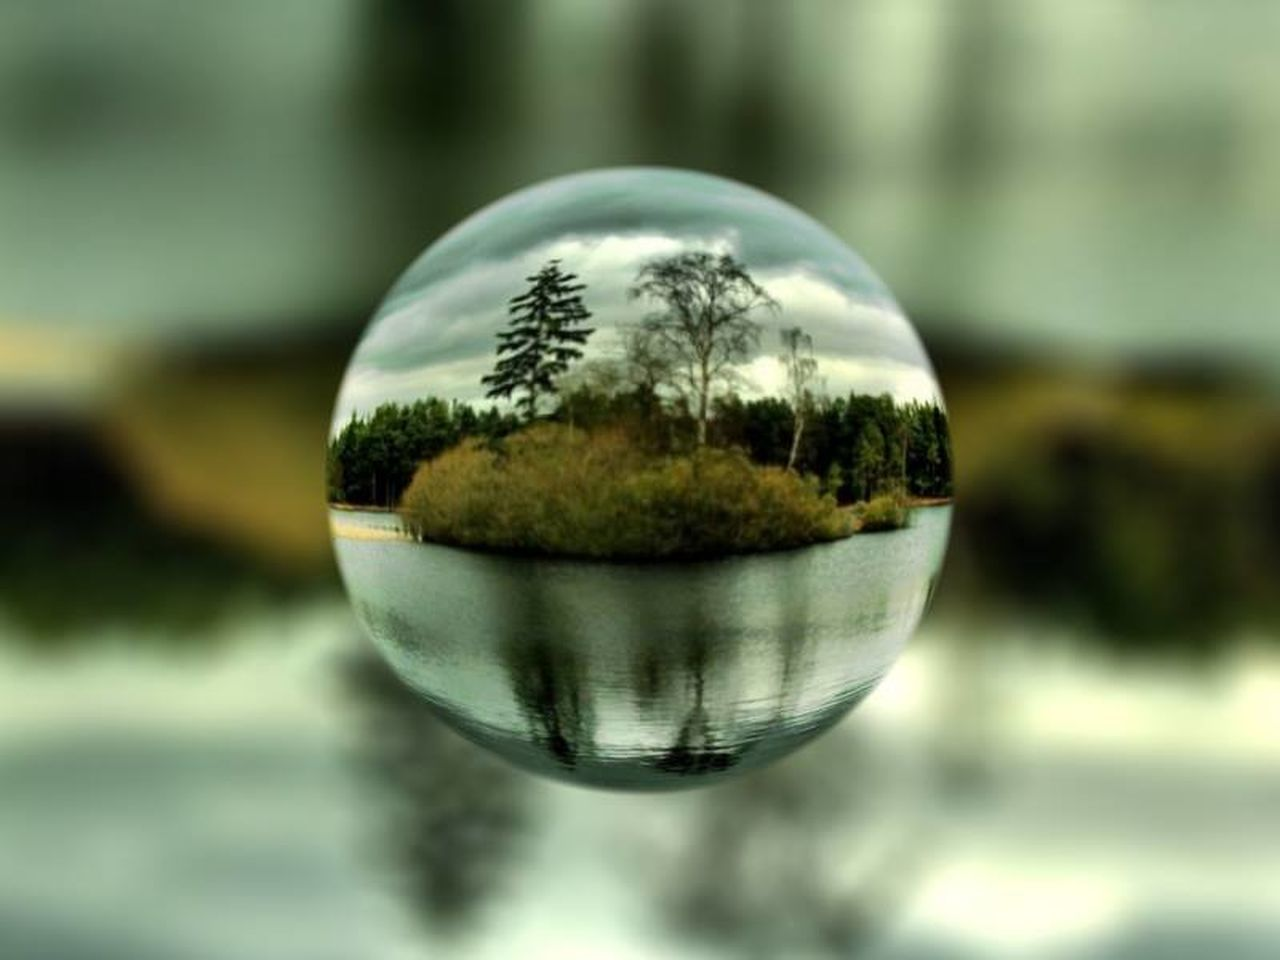 reflection, crystal ball, focus on foreground, close-up, no people, outdoors, day, water, tree, nature